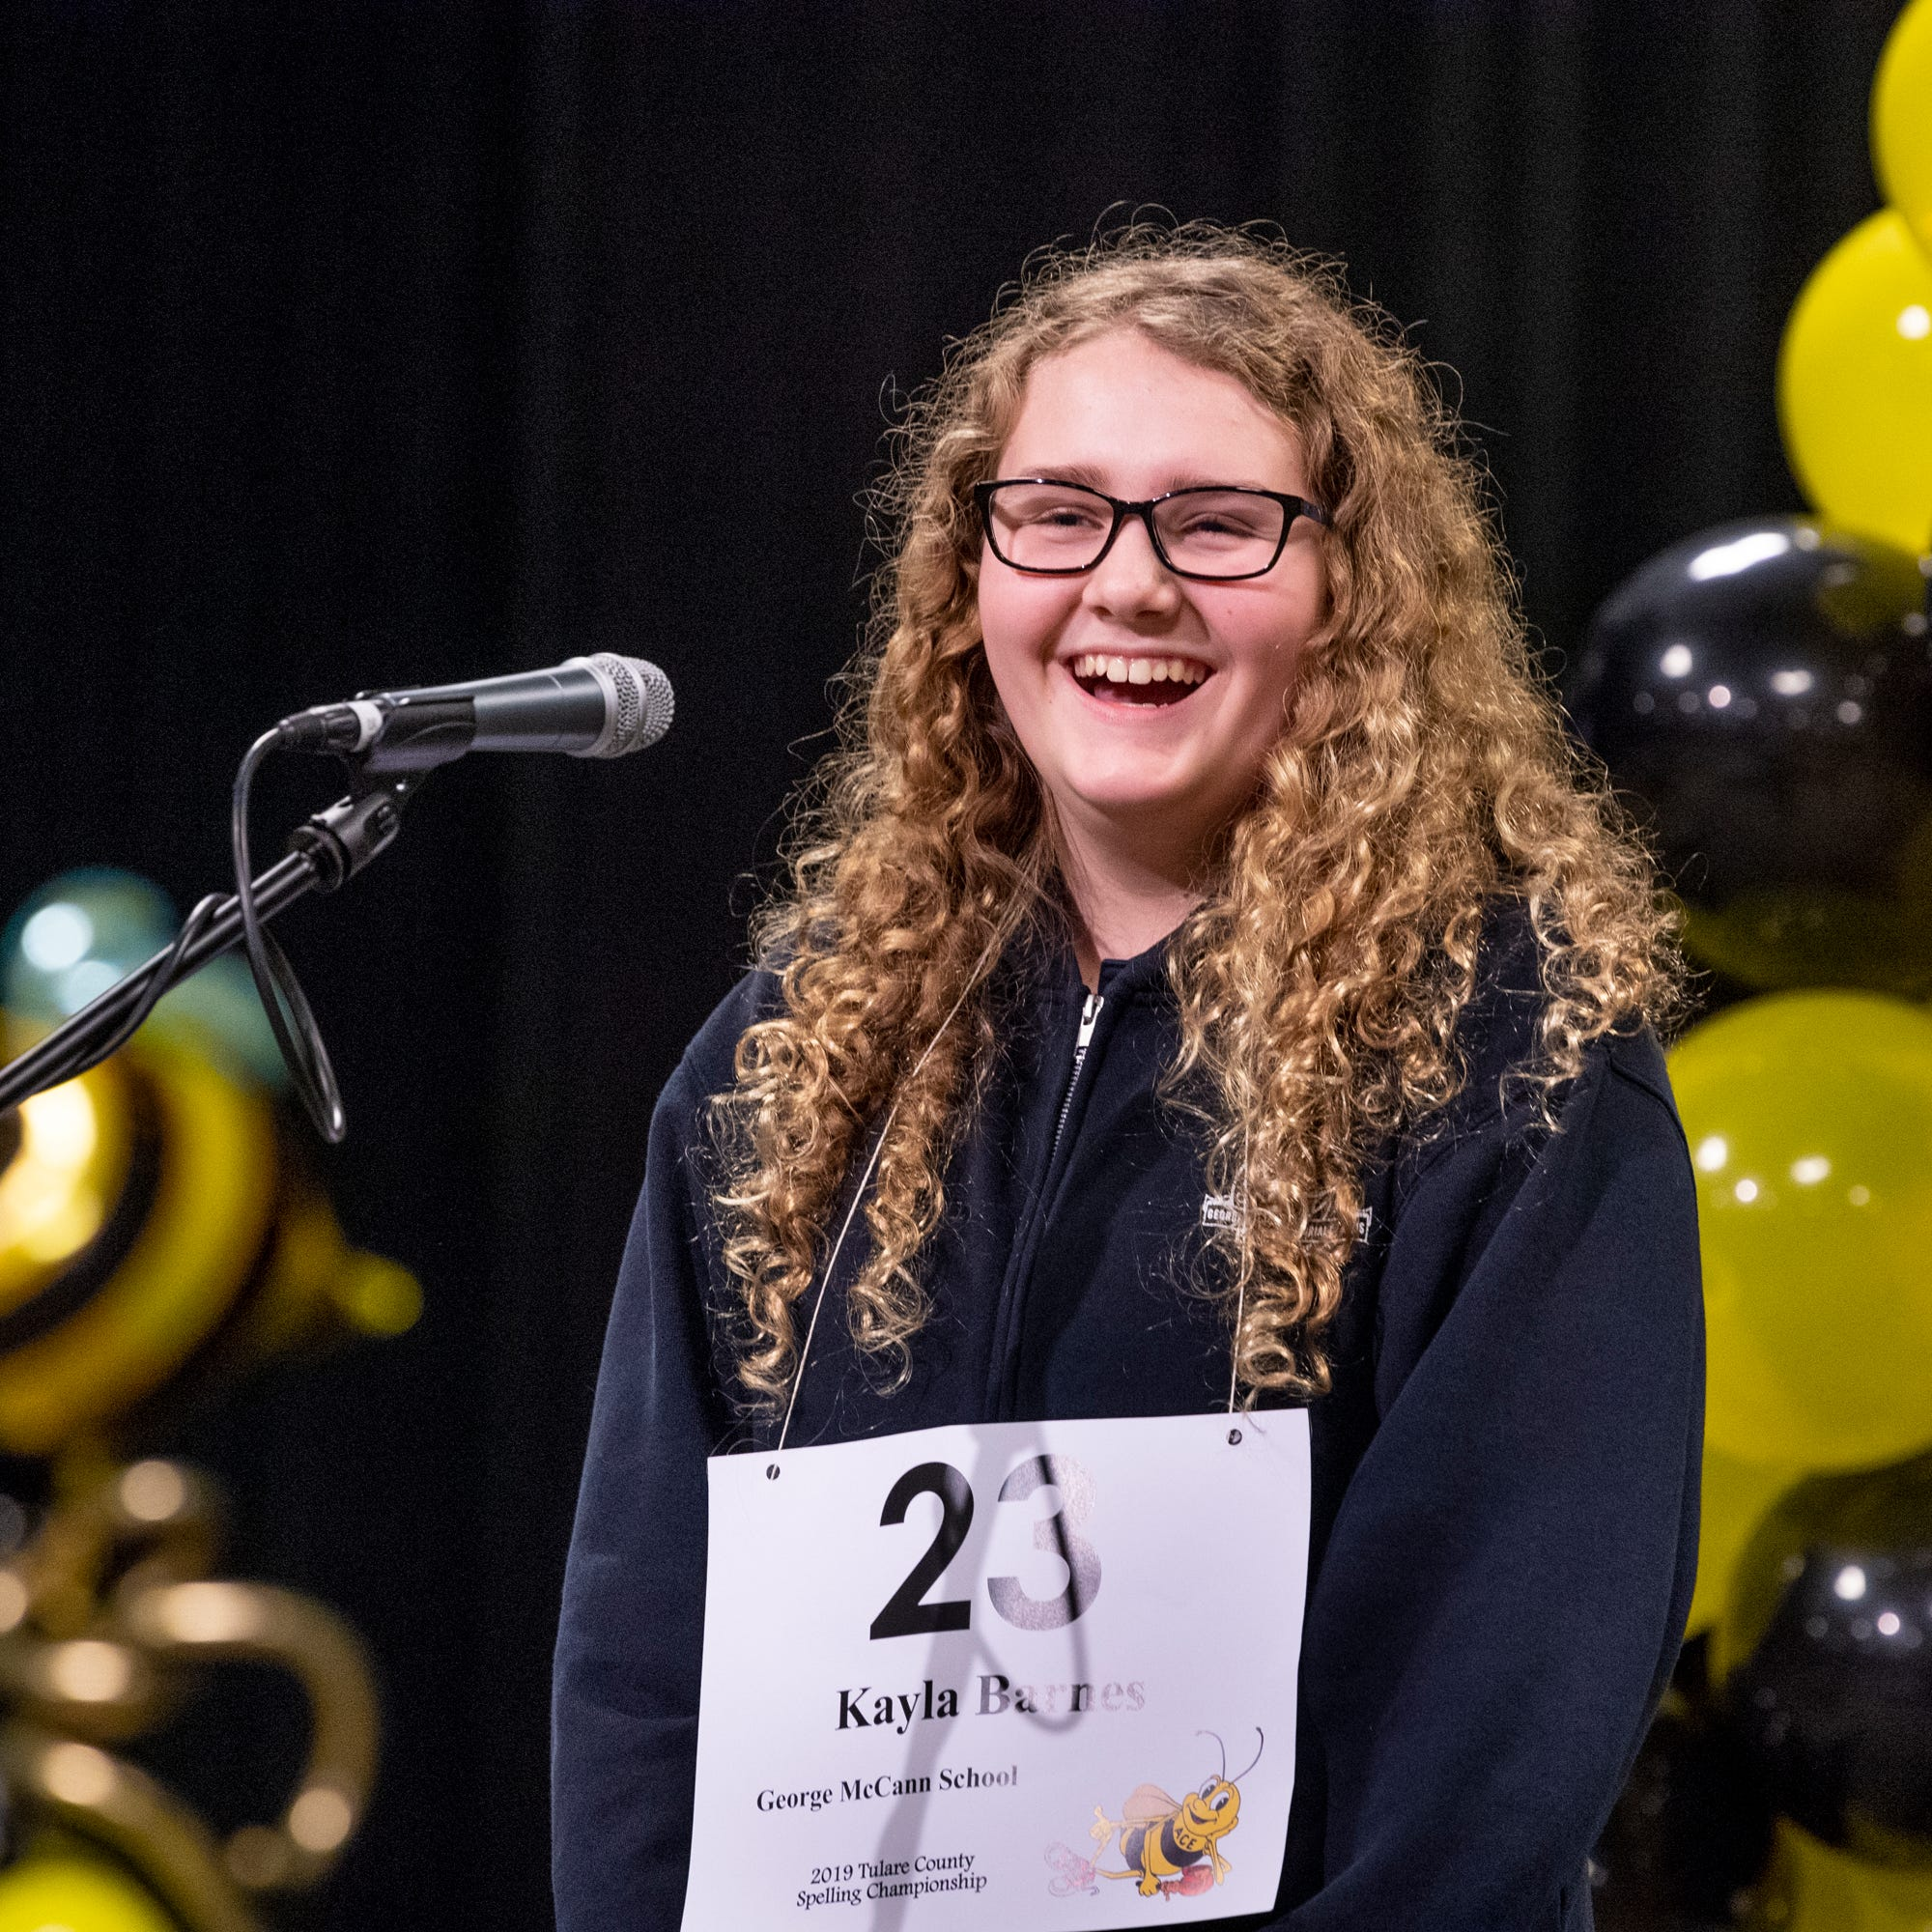 Visalia student takes home Tulare County Spelling Bee win